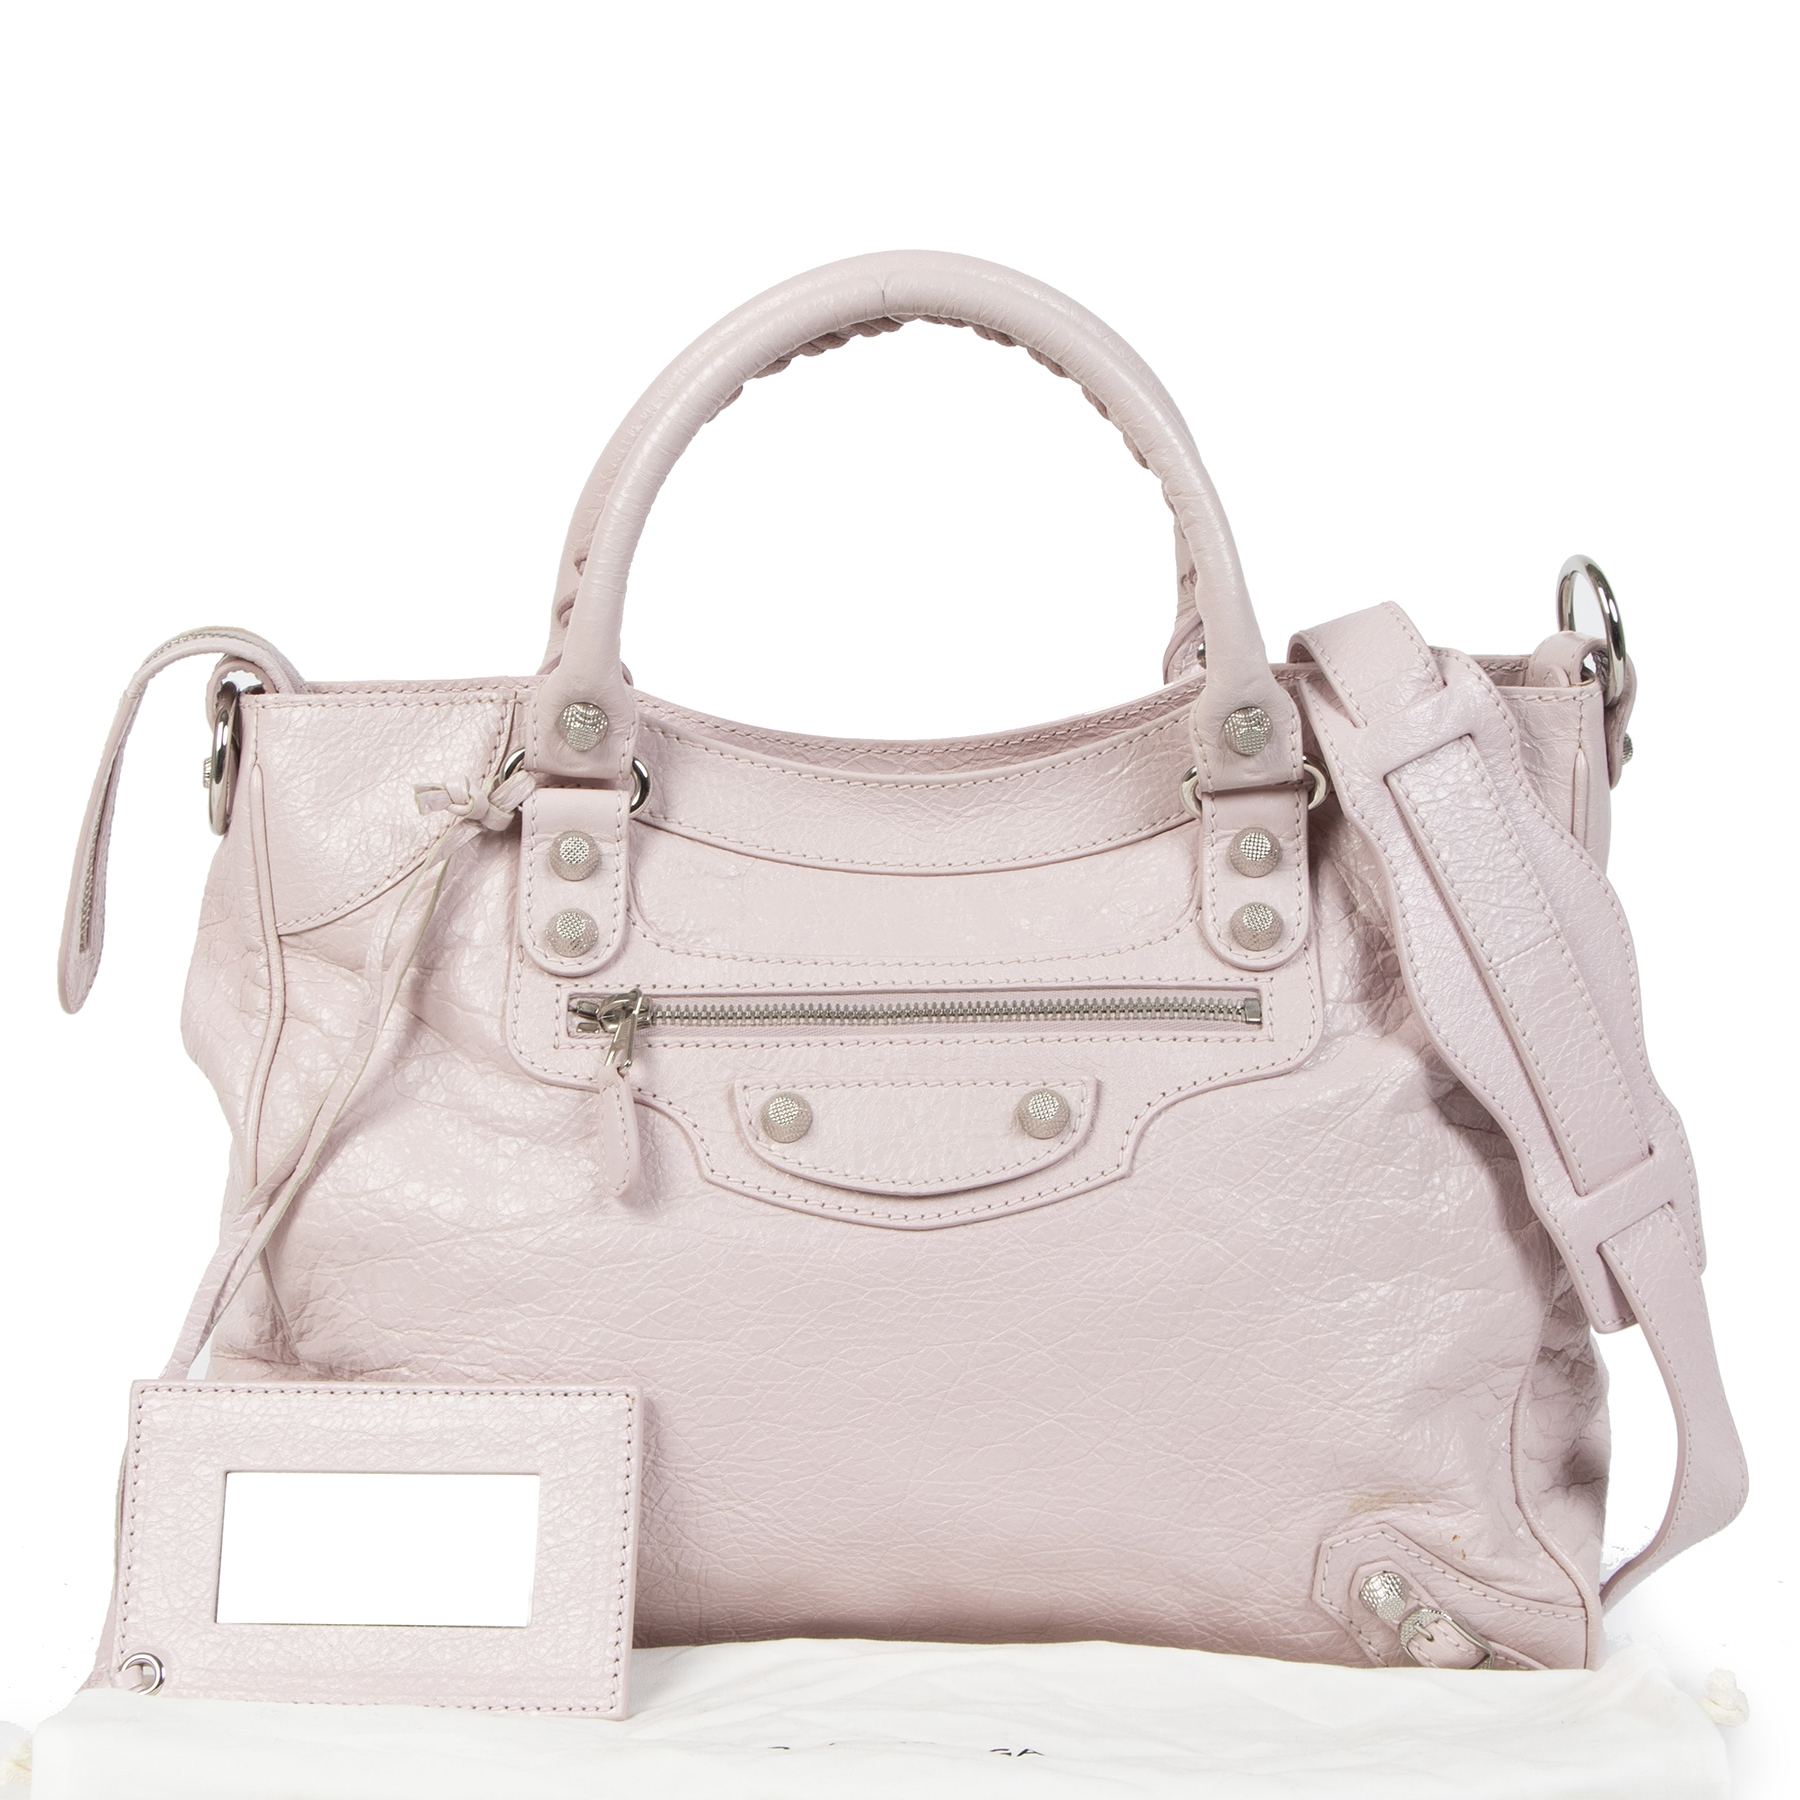 Balenciaga Light Pink Velo Top Handle Bag